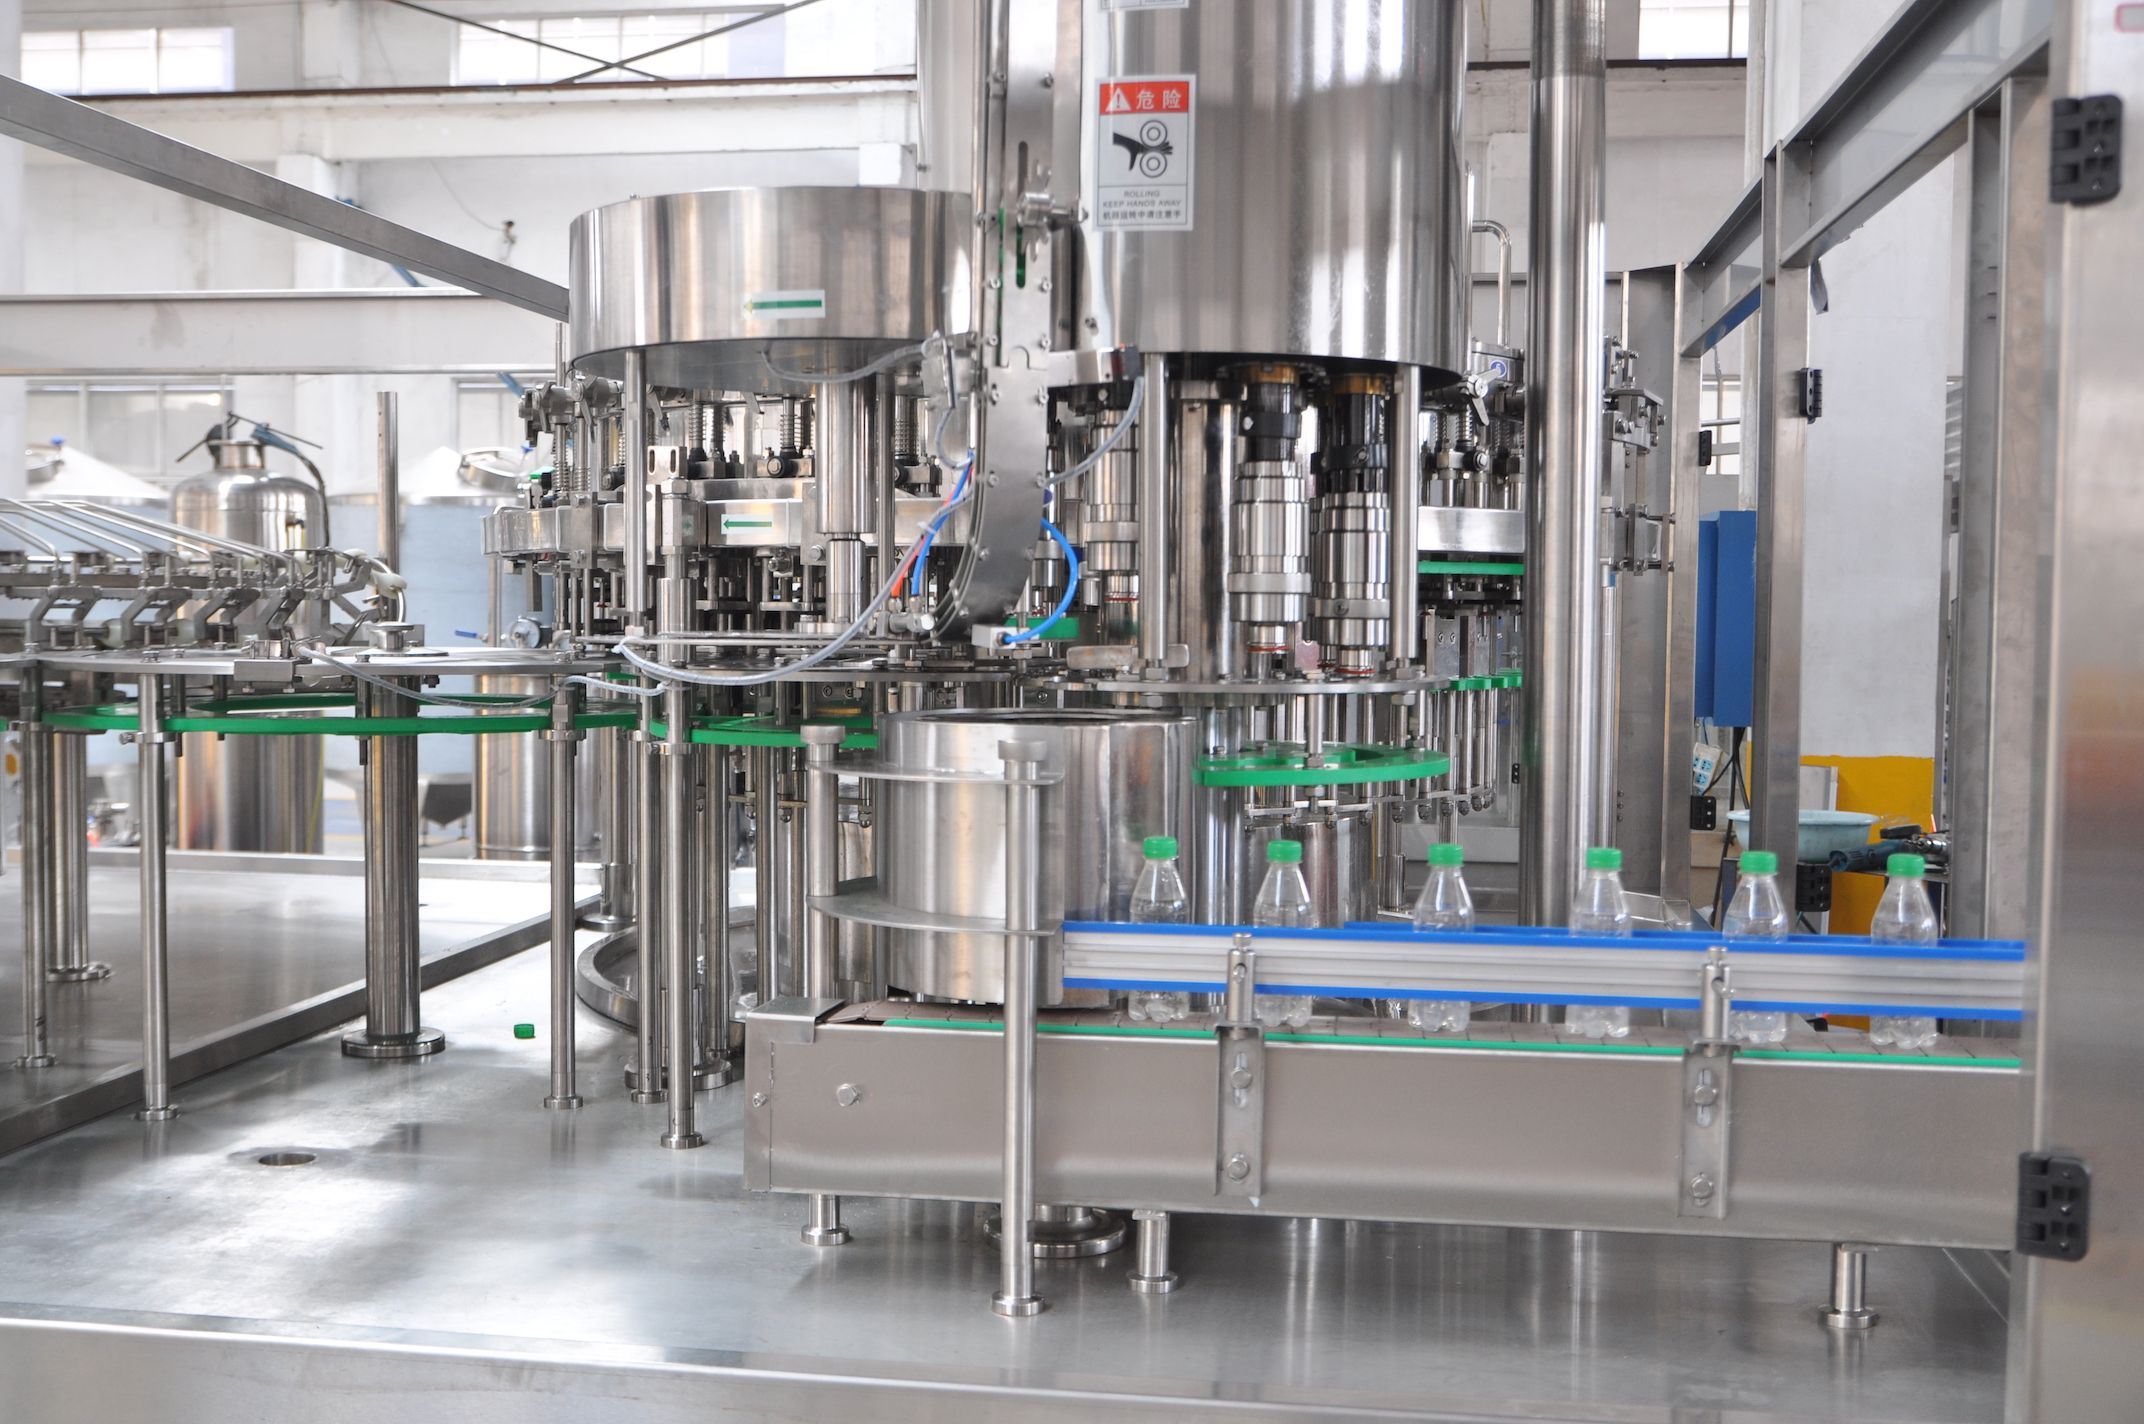 3 In 1 Rotary Filling Machine Water Filling Machine Application Still Water Pure Water Ro Water Mineral Water S Pet Bottle Still Water Filling System